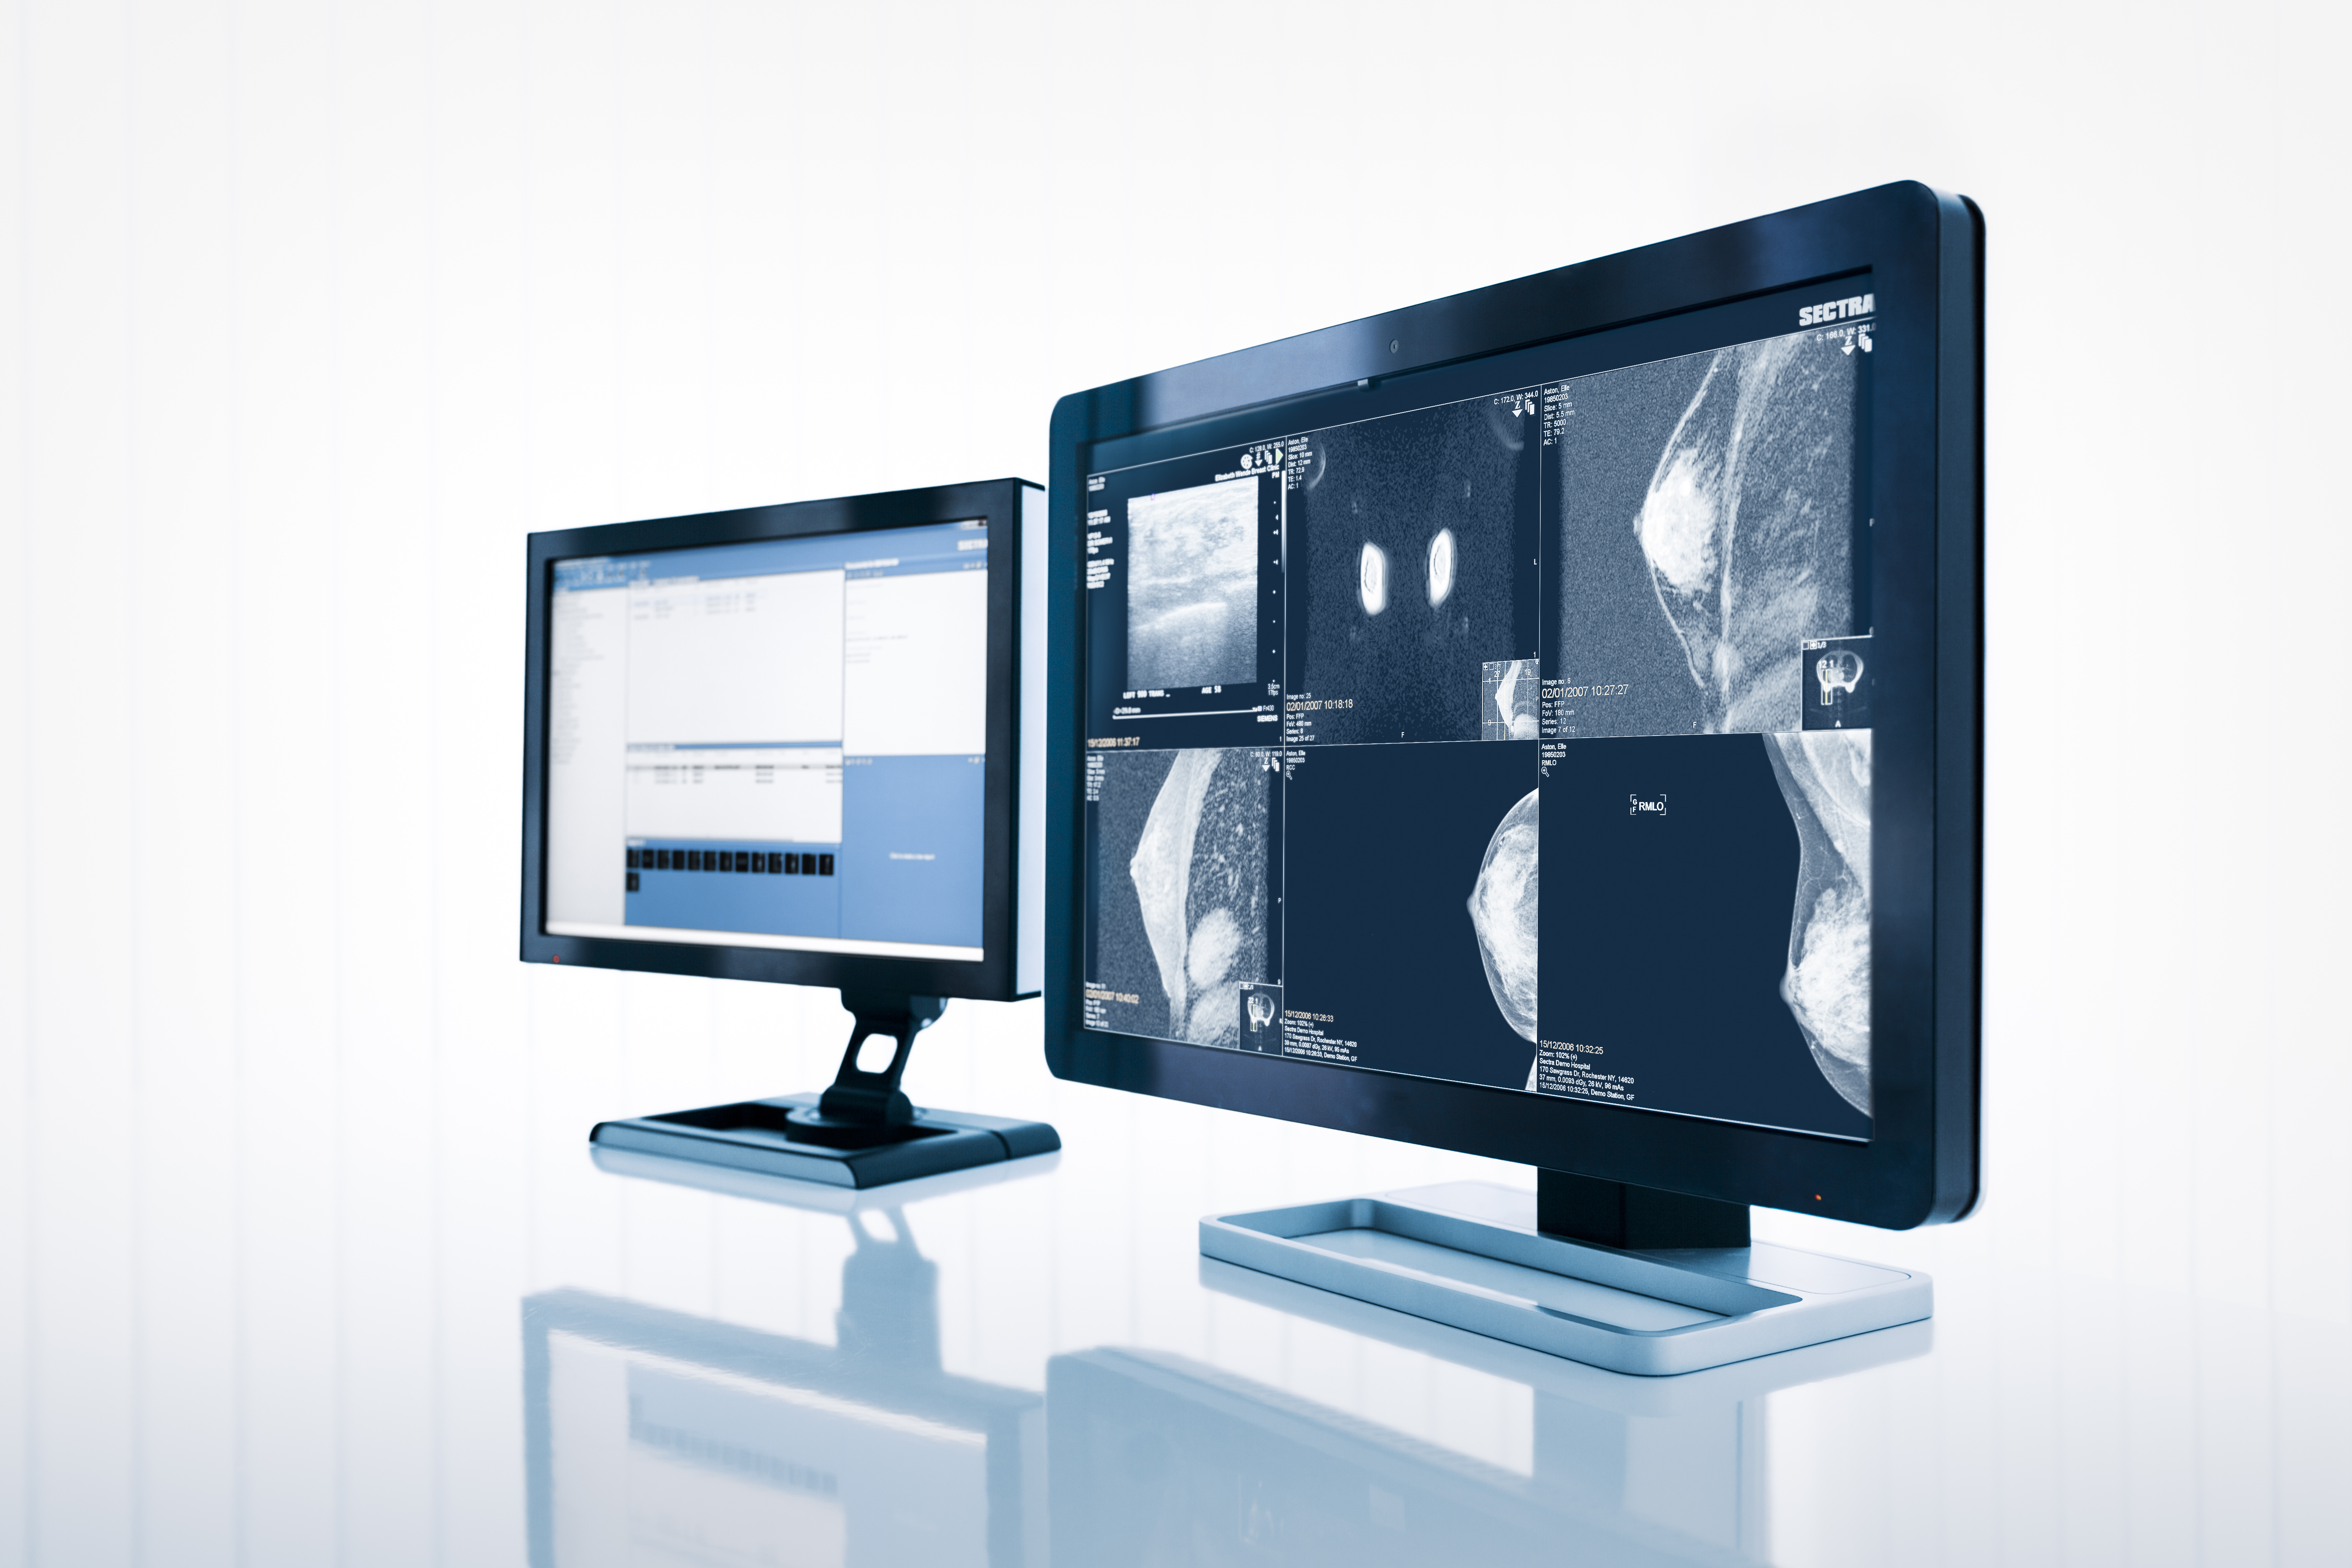 sectra breast tomosynthesis Breast dosimetry in digital mammography and tomosynthesis david r dance nccpm, royal surrey county hospital united kingdom outline  sectra overall variation of  what is the dose for breast tomosynthesis 1 the value of t is close to 1 2.